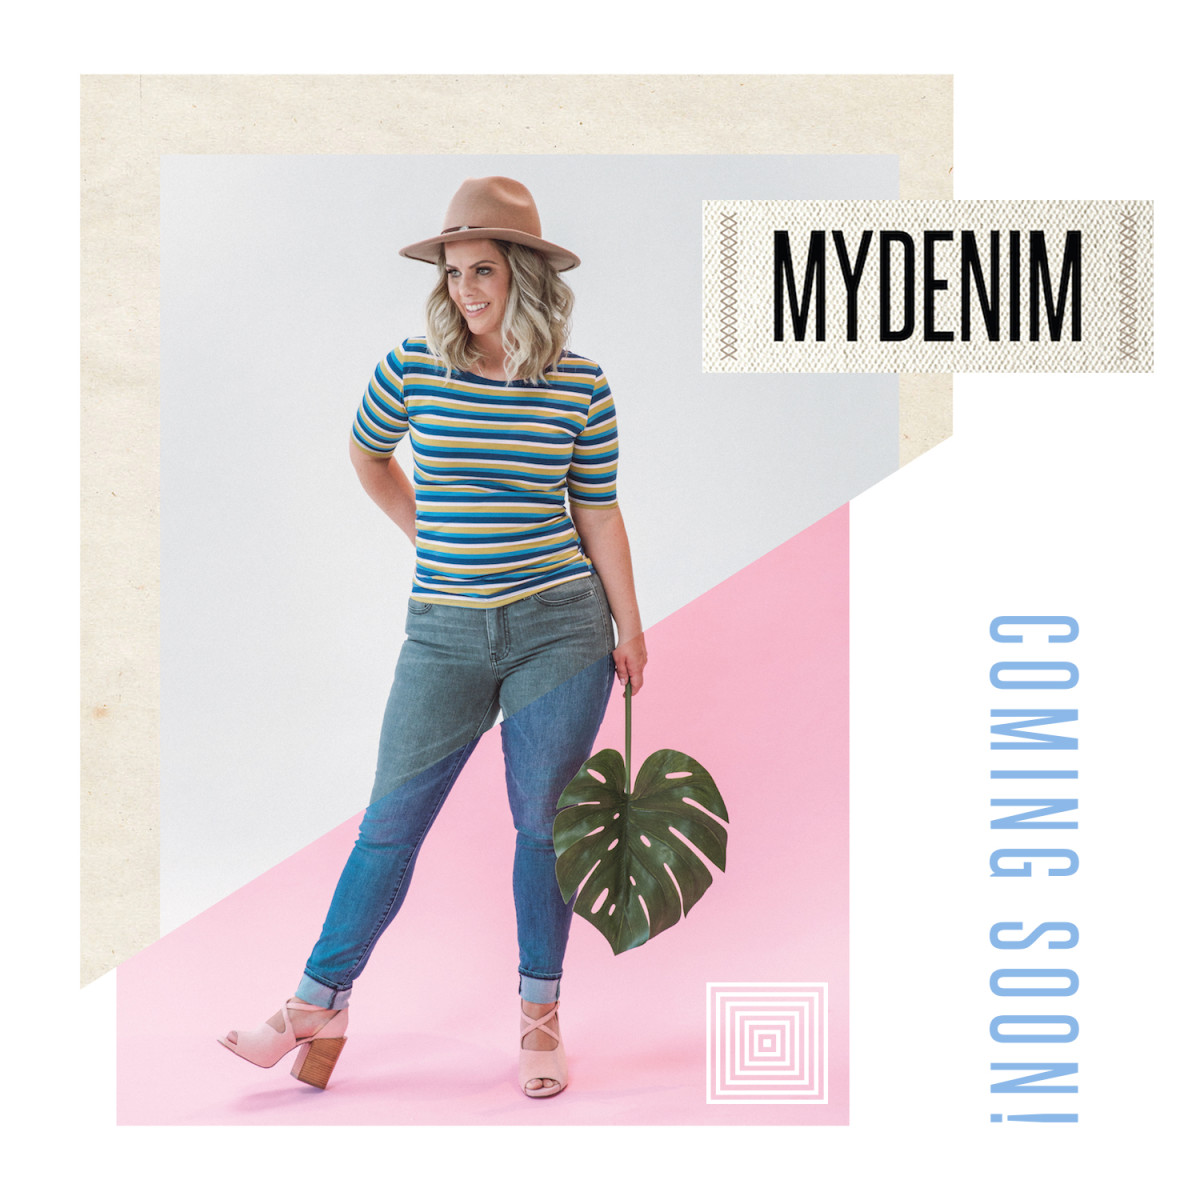 lularoes-mydenim-will-be-available-soon